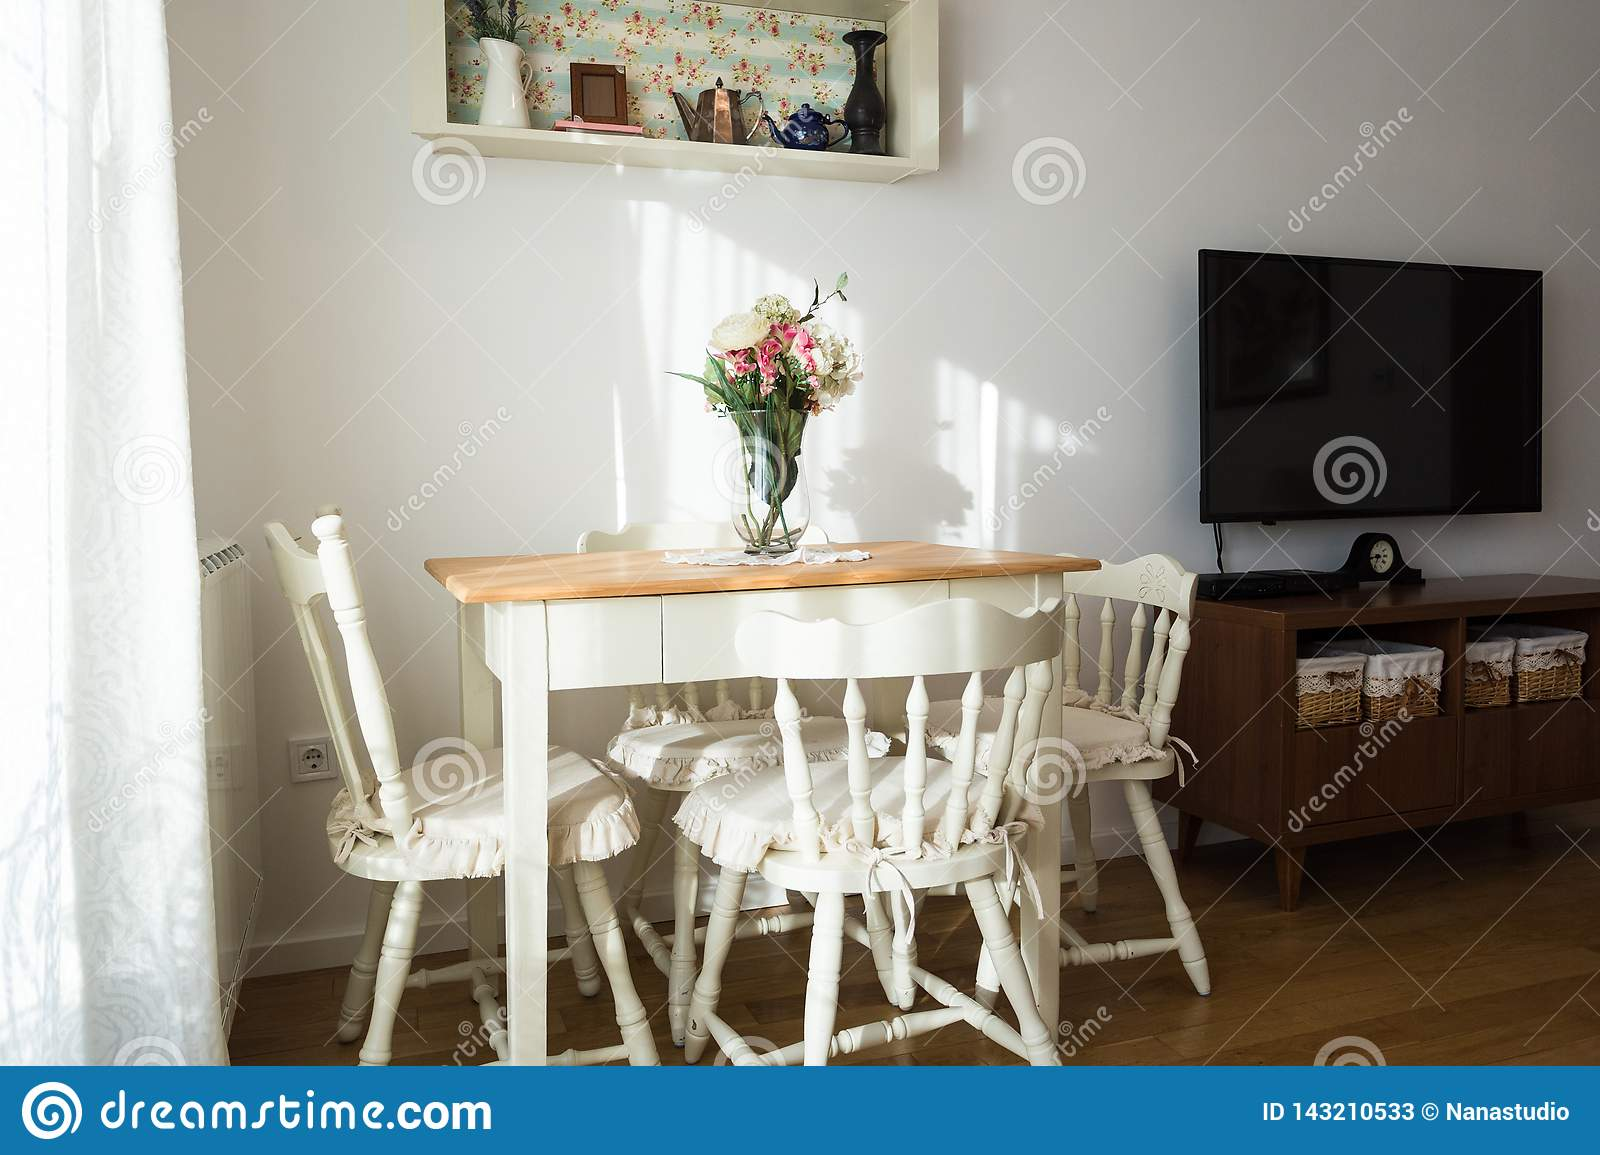 Nicely Decorated Living Room Dining Table And Some Chairs